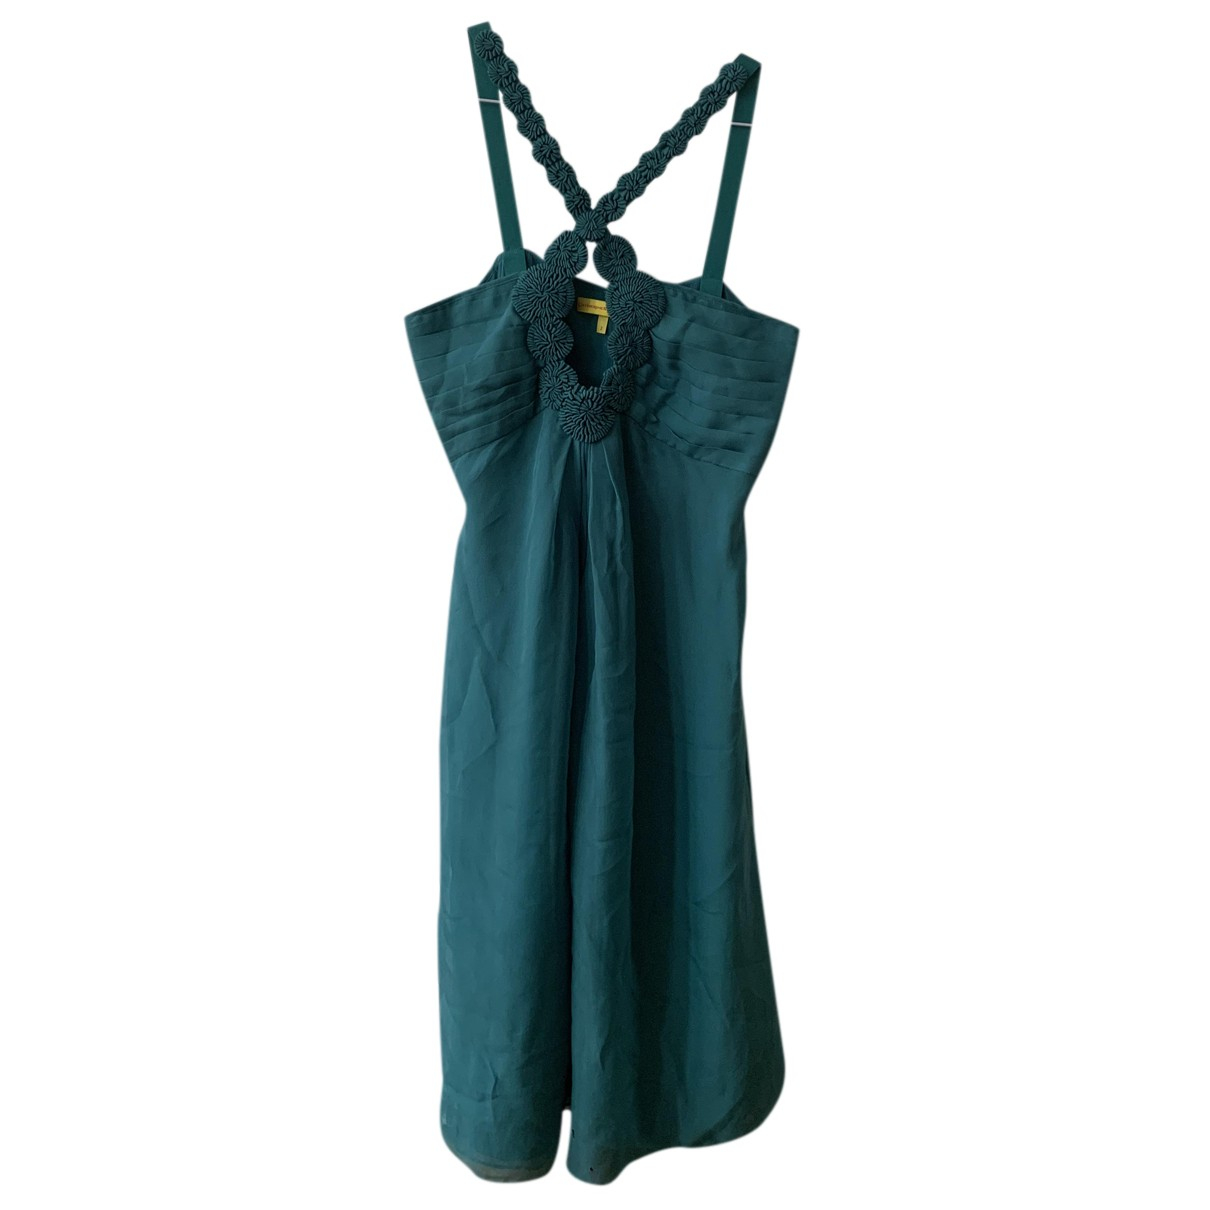 Catherine Malandrino N Turquoise Silk dress for Women 2 US